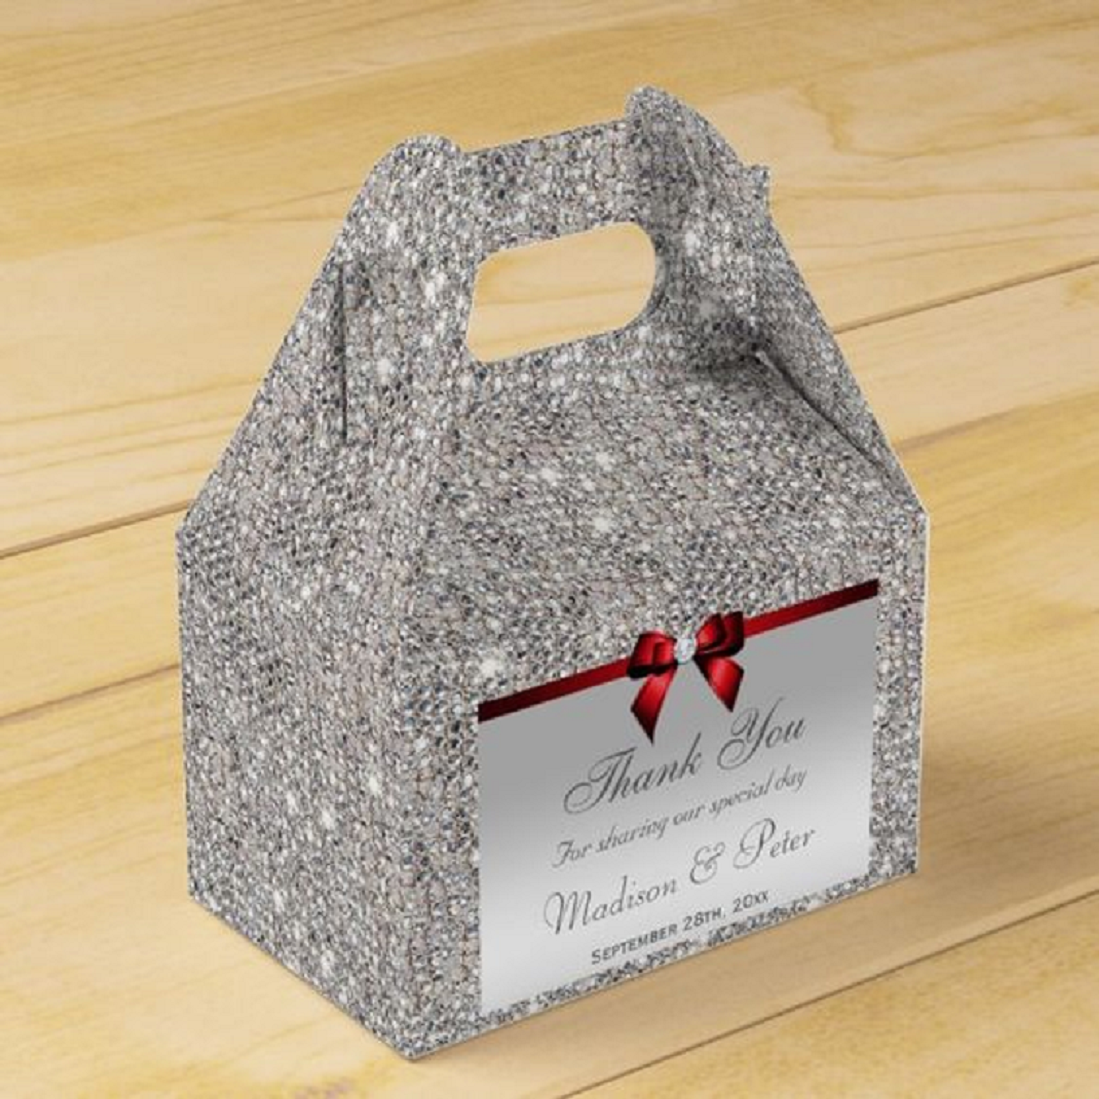 Bling wedding accessories Sparkling Classy Silver Sequins Red Diamond Bow Favor Box